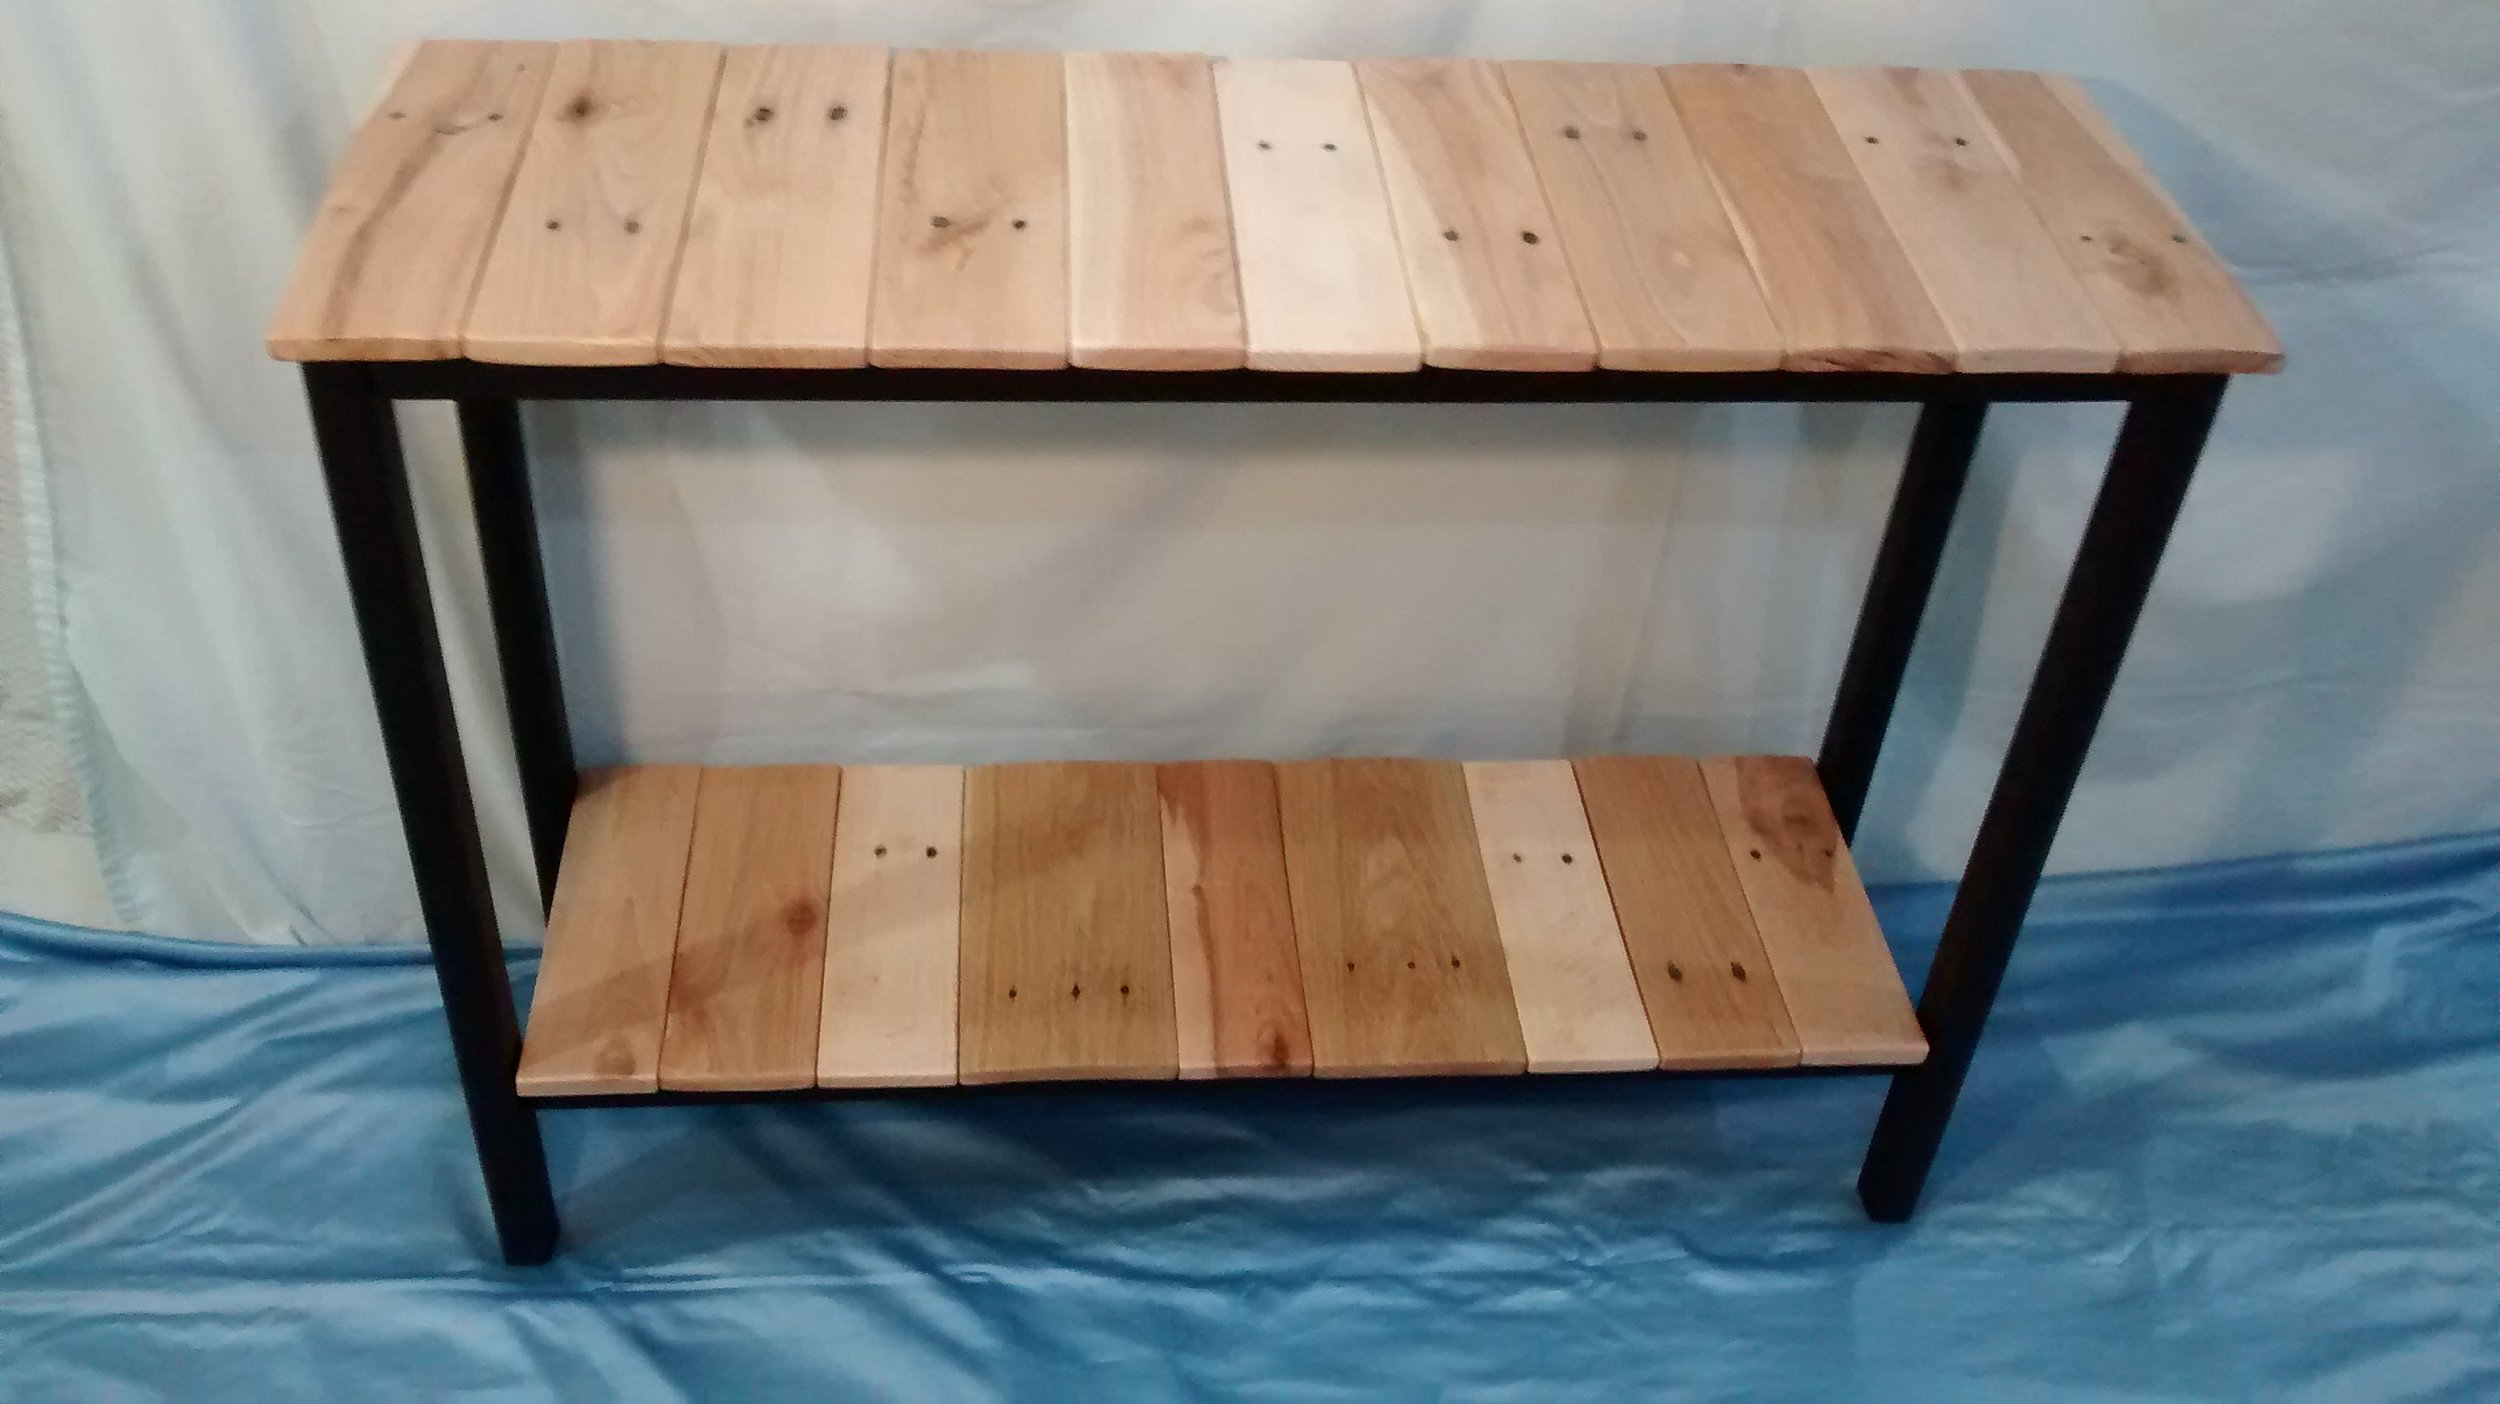 Side Table with Two Reclaimed Wood Shelves